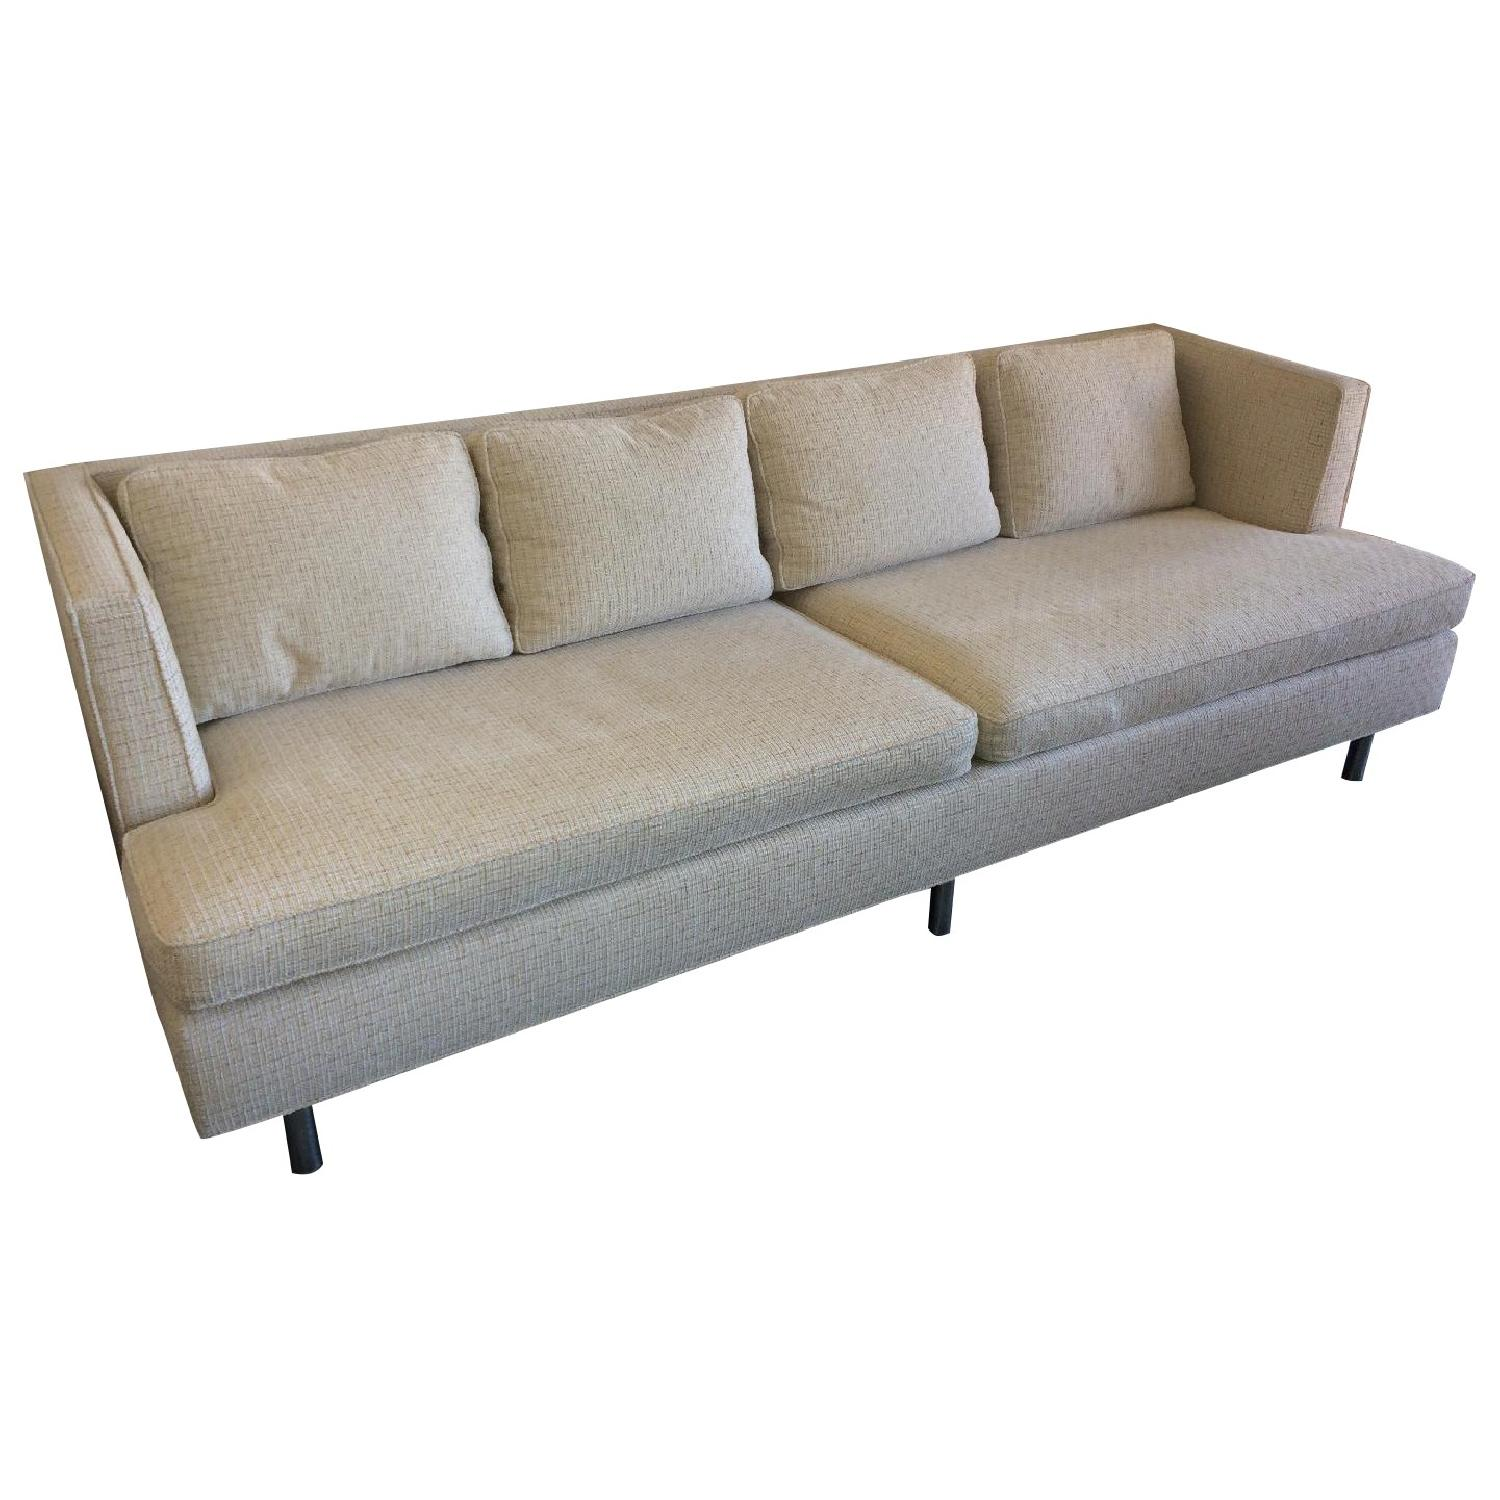 Lost City Arts Wormley Style Sofa - image-4